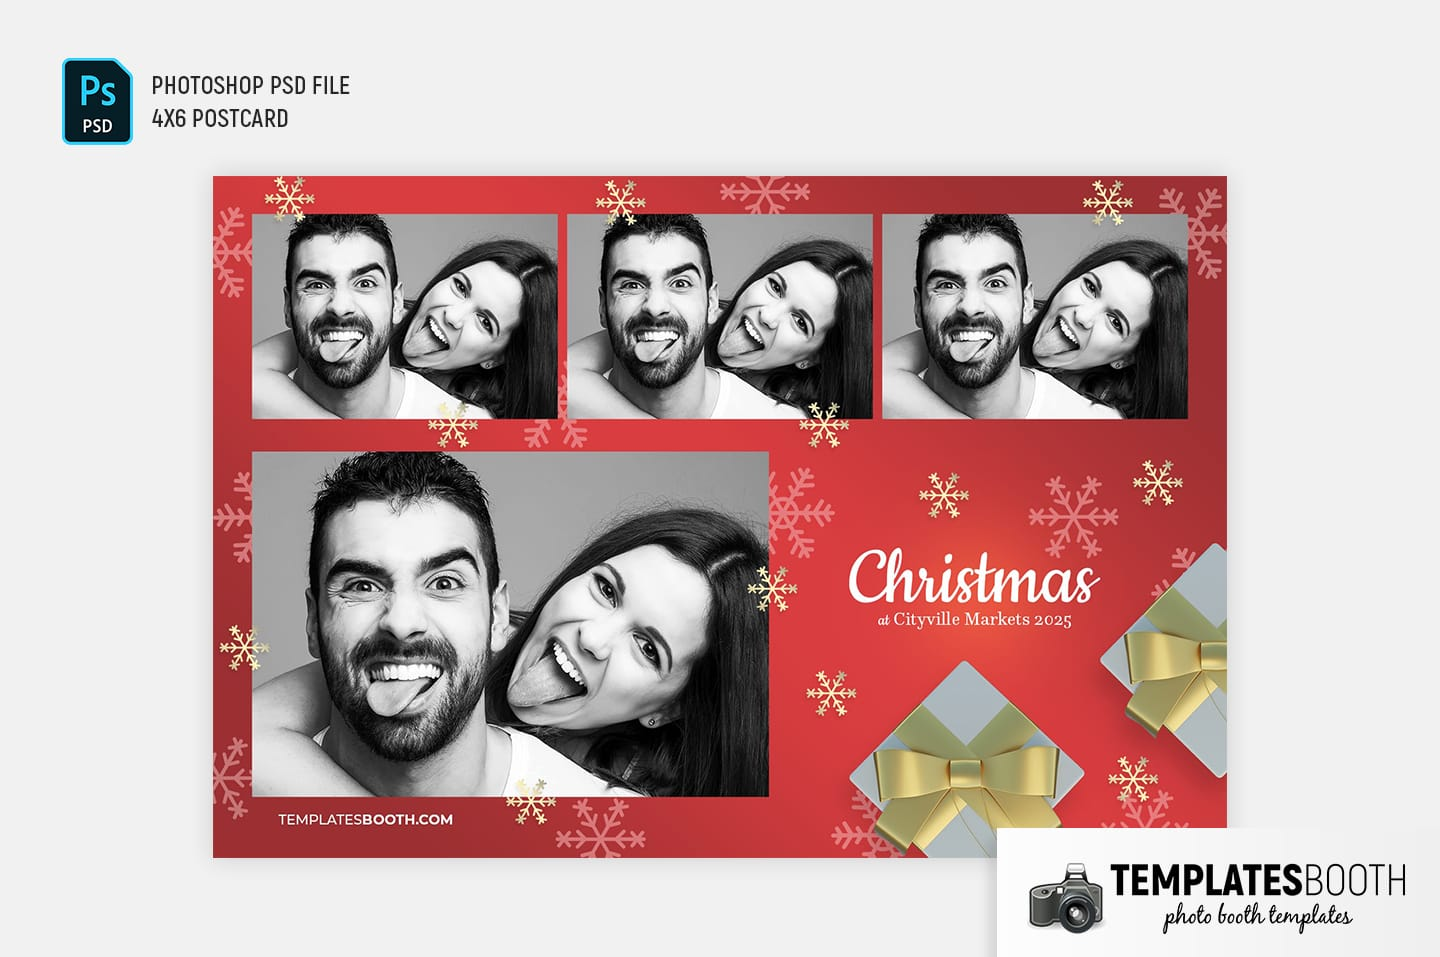 Christmas Gift Photo Booth Template (4x6 postcard)